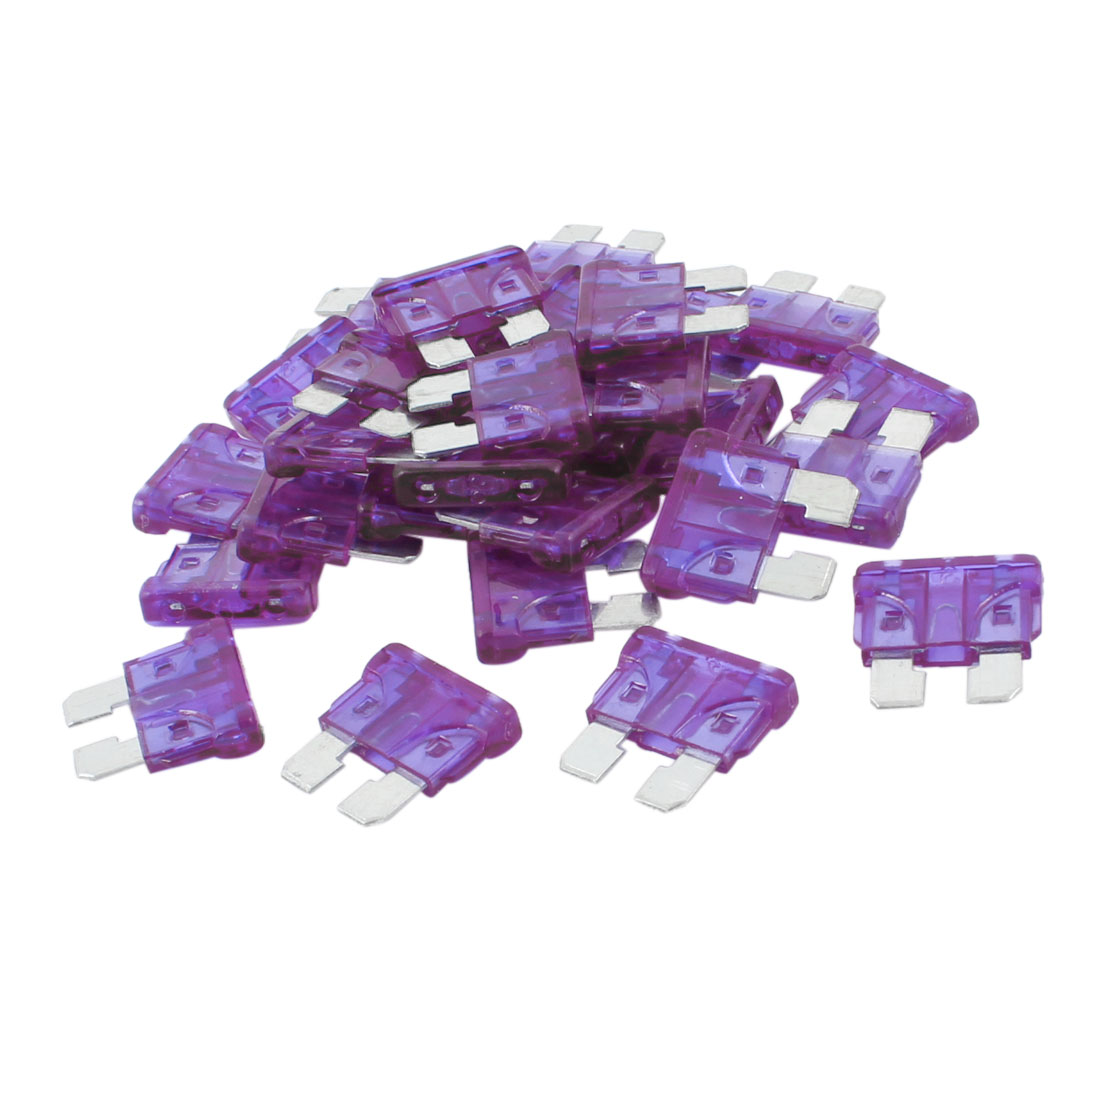 30pcs Clear Purple 3A Blade Fuses Set for Vehicle Car Auto